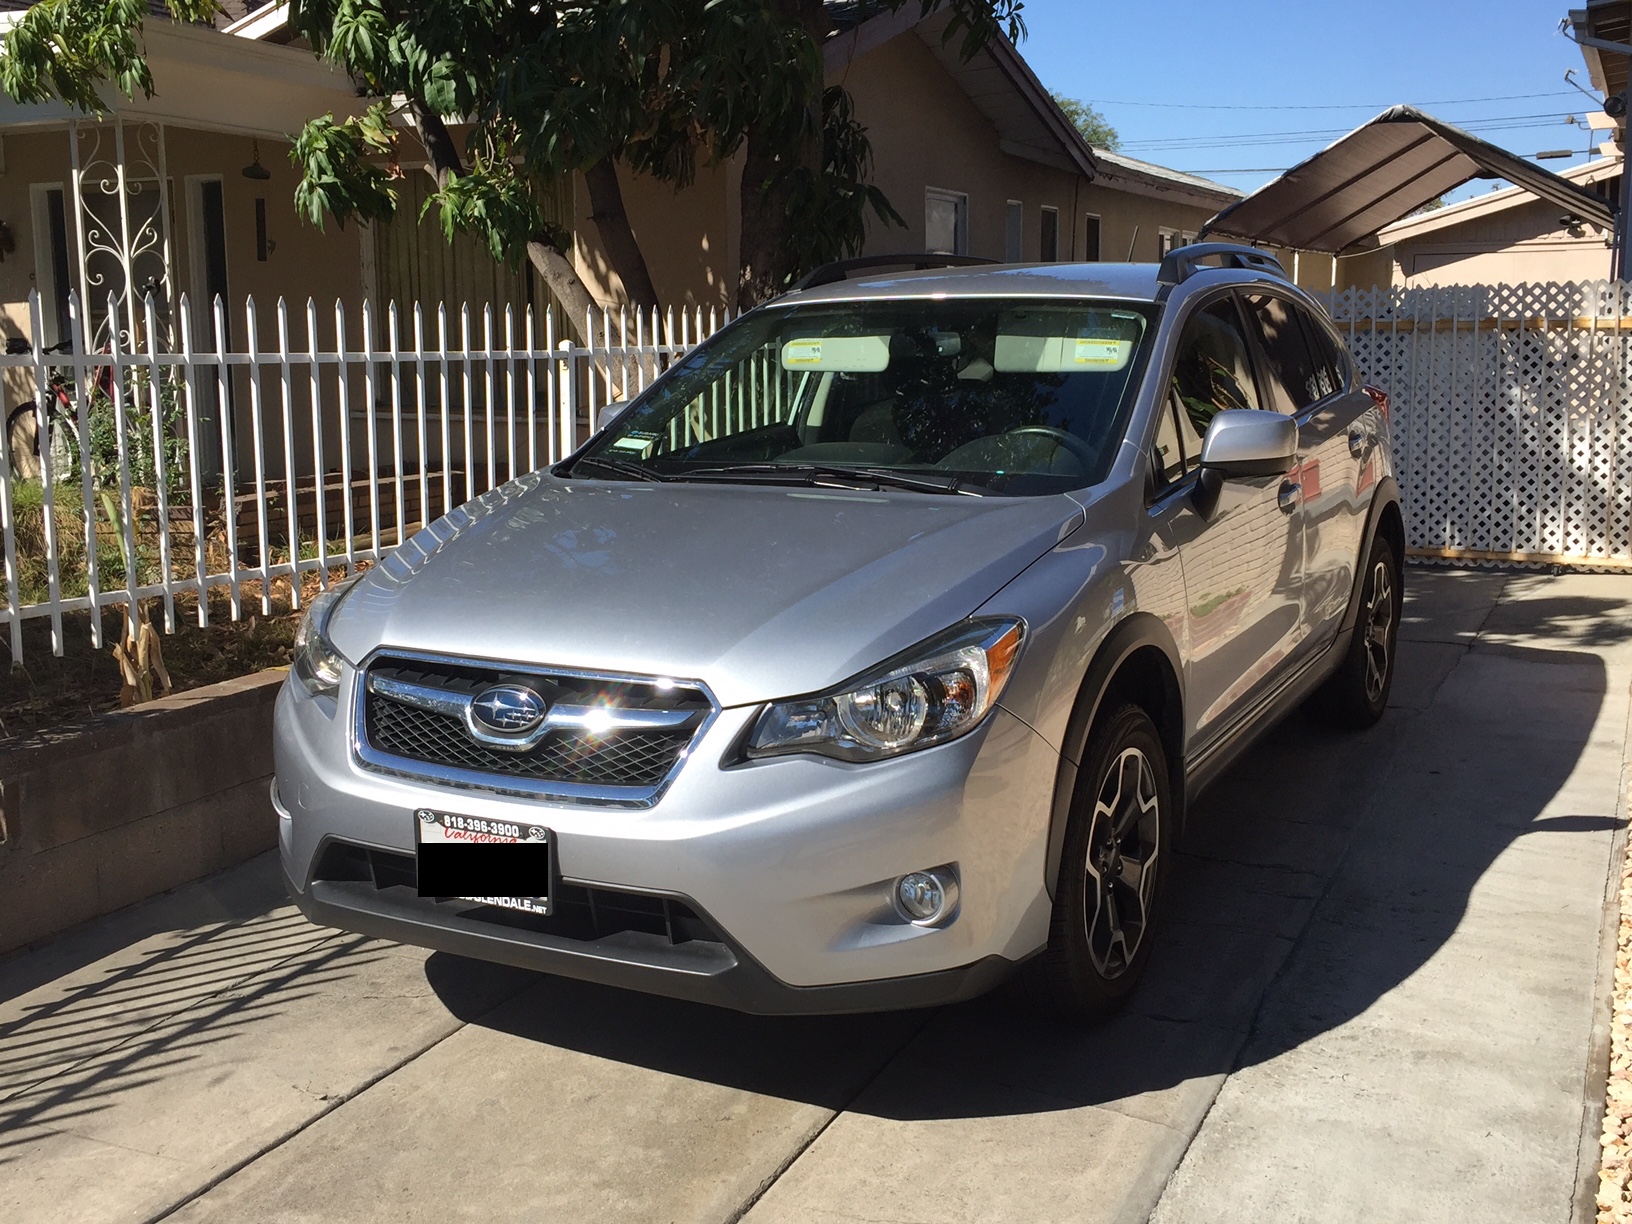 2013 Subaru Crosstrek LOW MILEAGE (PRICED TO SELL)-img_1155-jpg